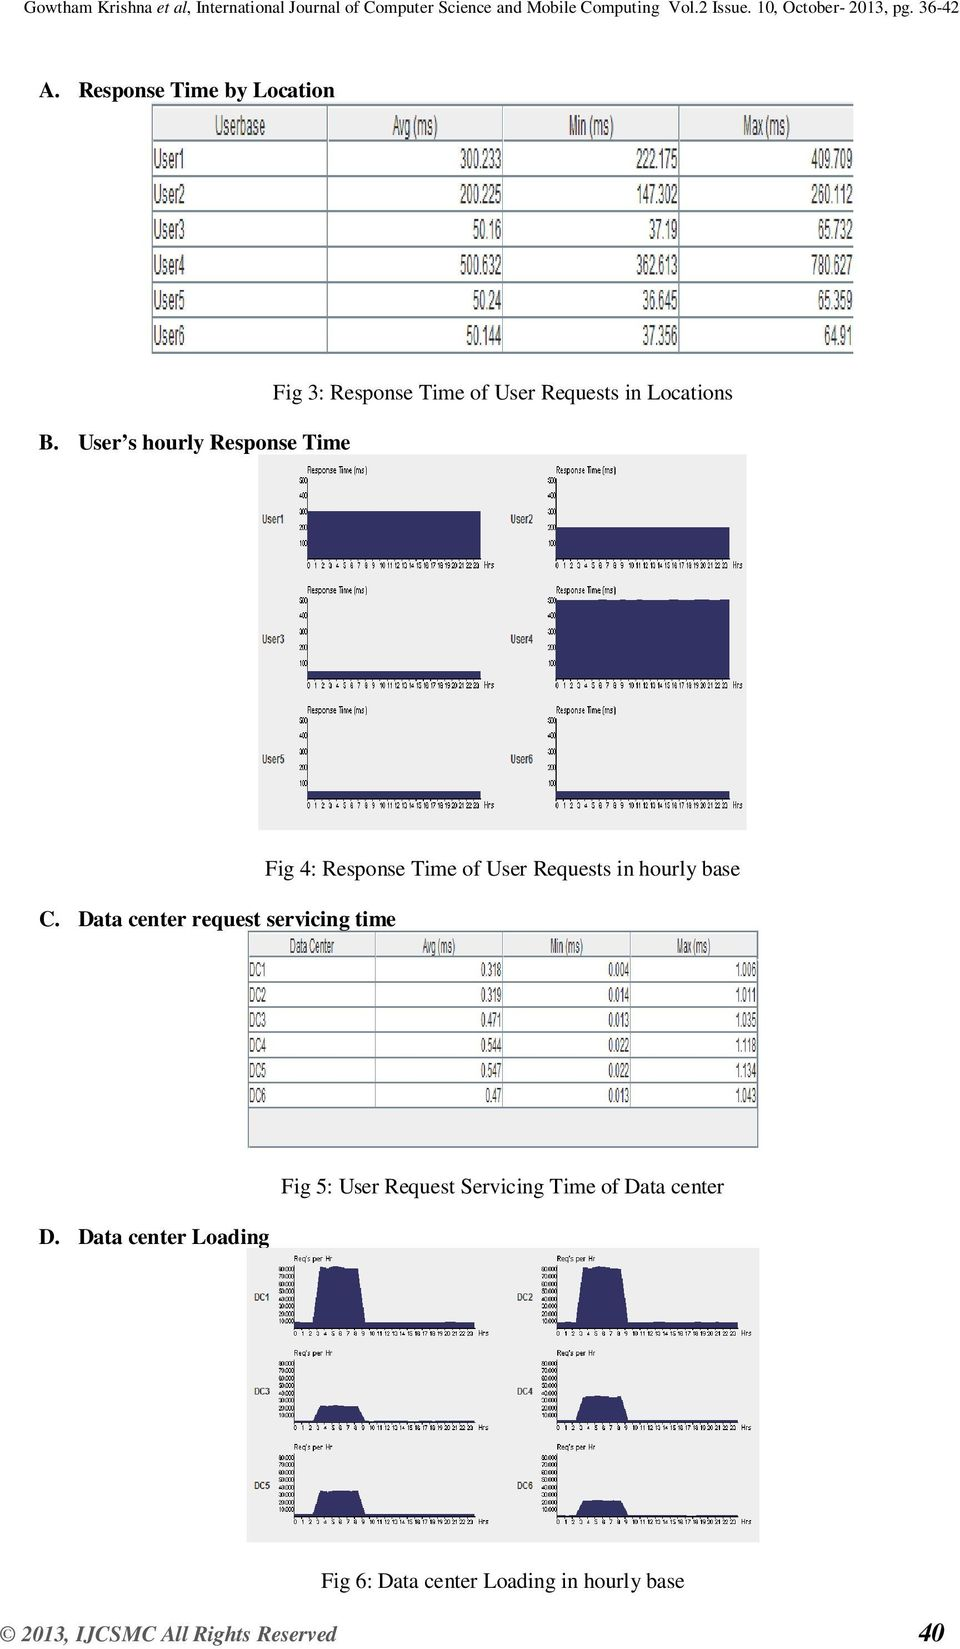 Data center request servicing time Fig 4: Response Time of User Requests in hourly base